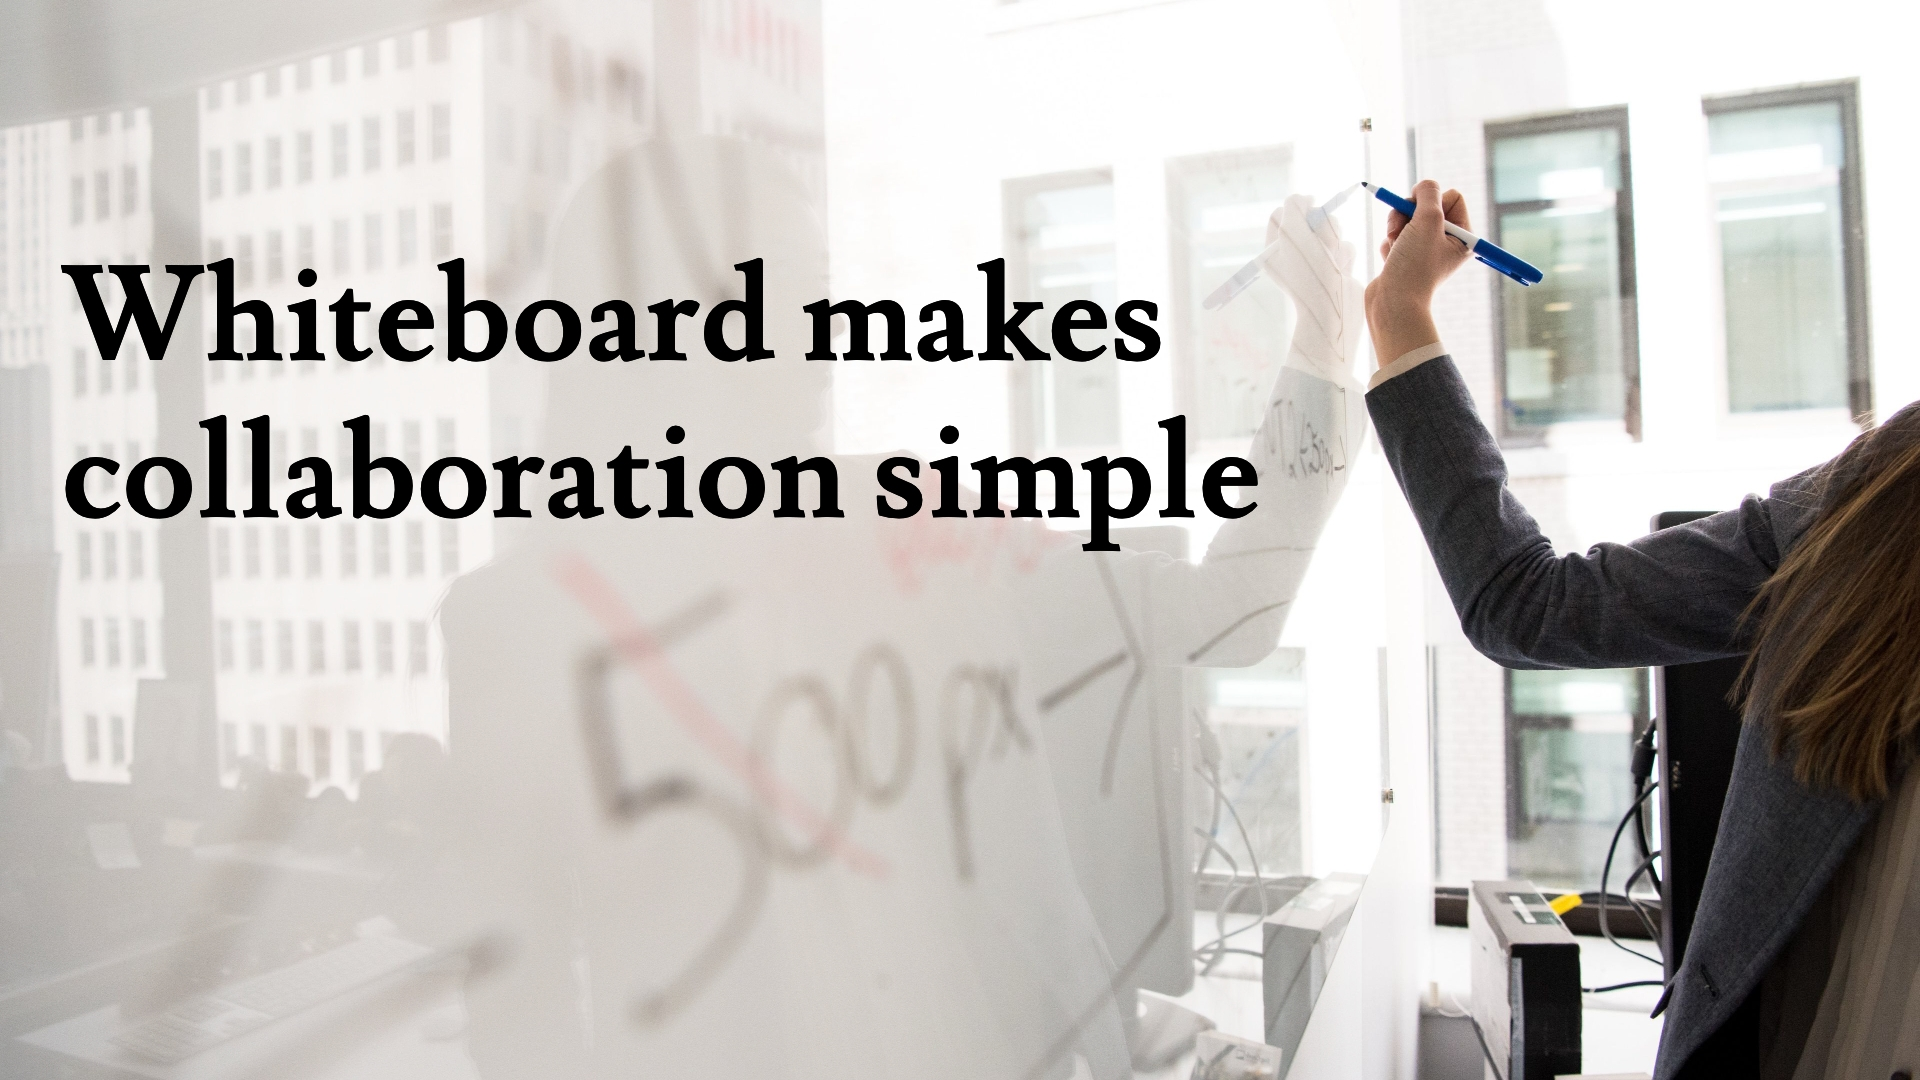 Whiteboard, 365, IT Support